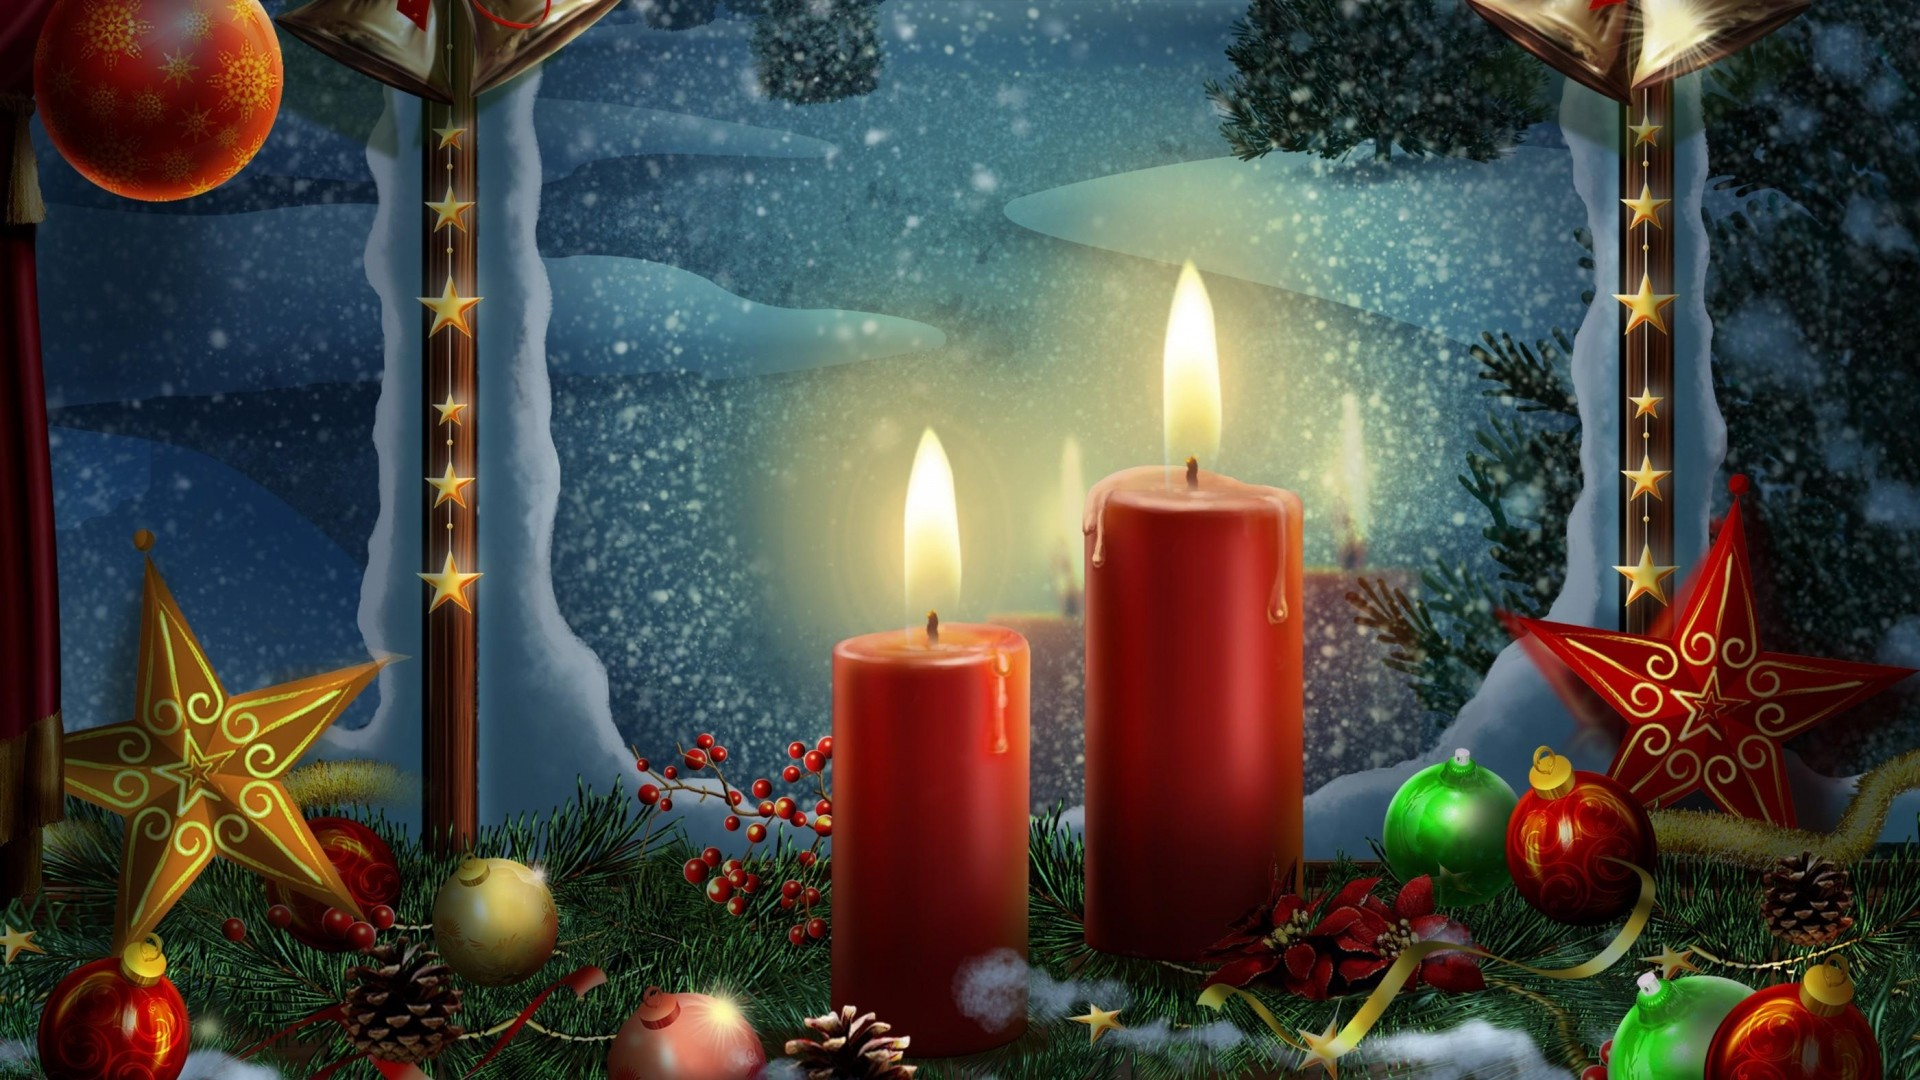 1920x1080  Wallpaper new year, holiday candles, postcards, toys, stars,  christmas